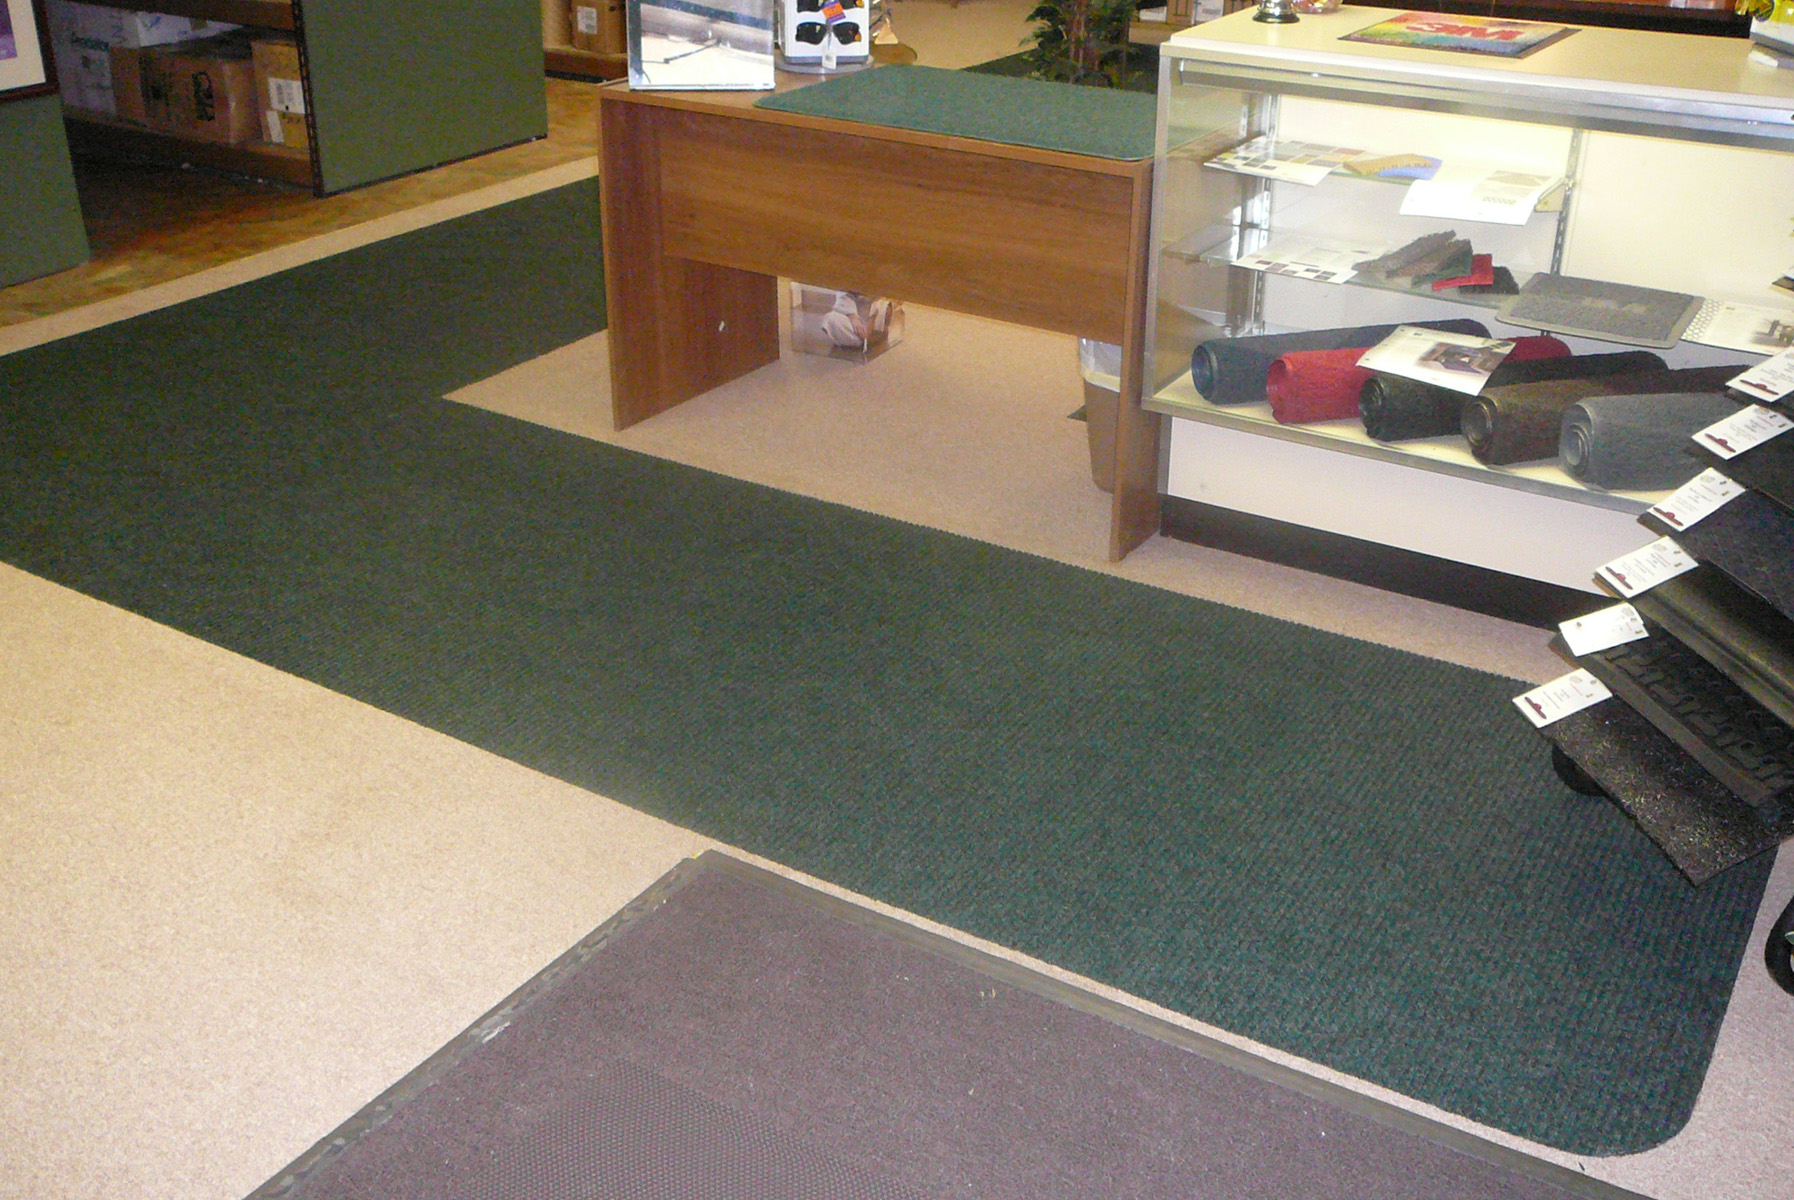 Under carpet or rug heated floor systems warm and dry wet floors martinson nicholls heated floor system under waterhog mattingin this installation over a concrete slab floor the martinson nicholls heating system was dailygadgetfo Images